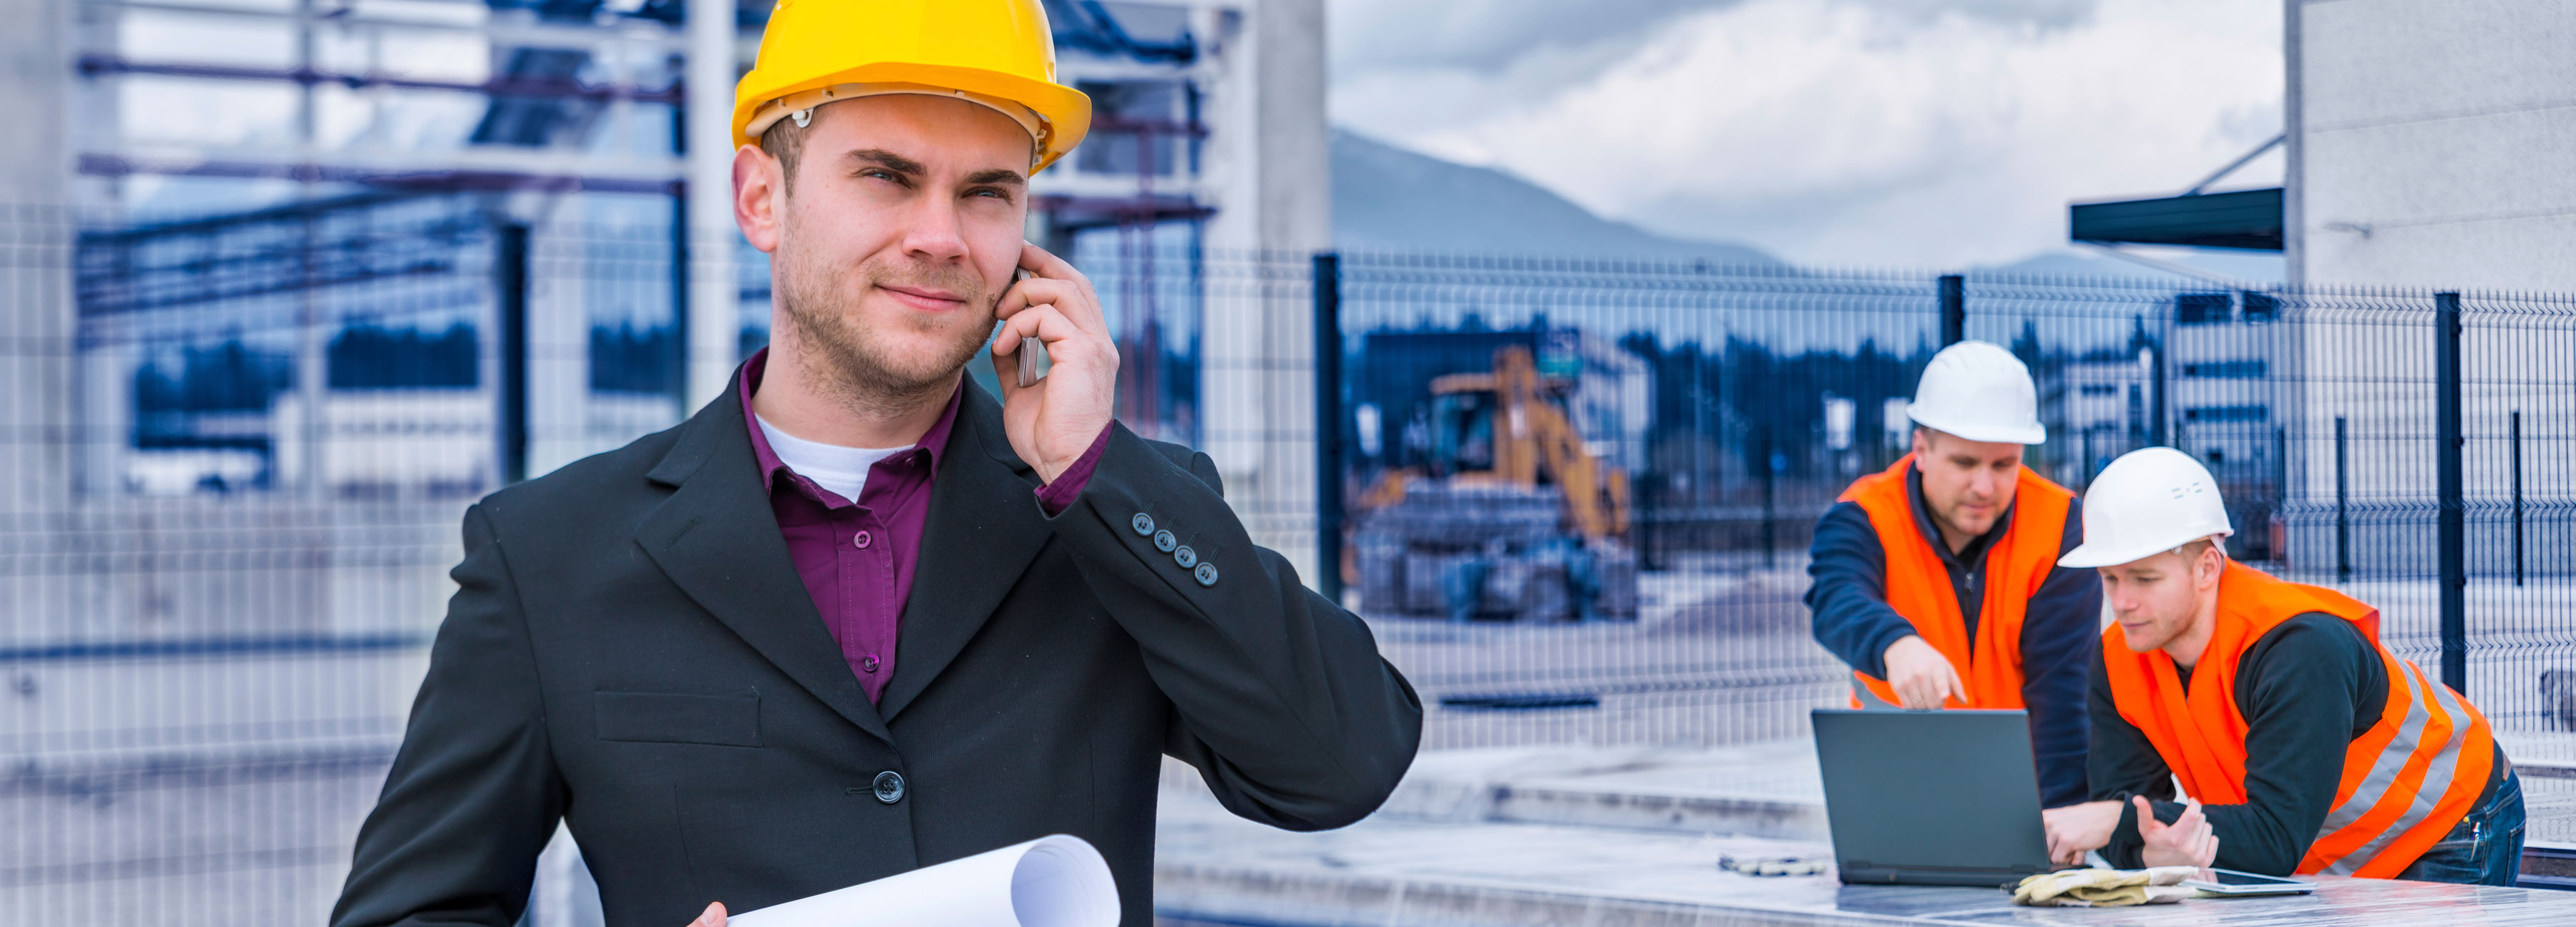 Foreman on a phone call with two construction workers in the background